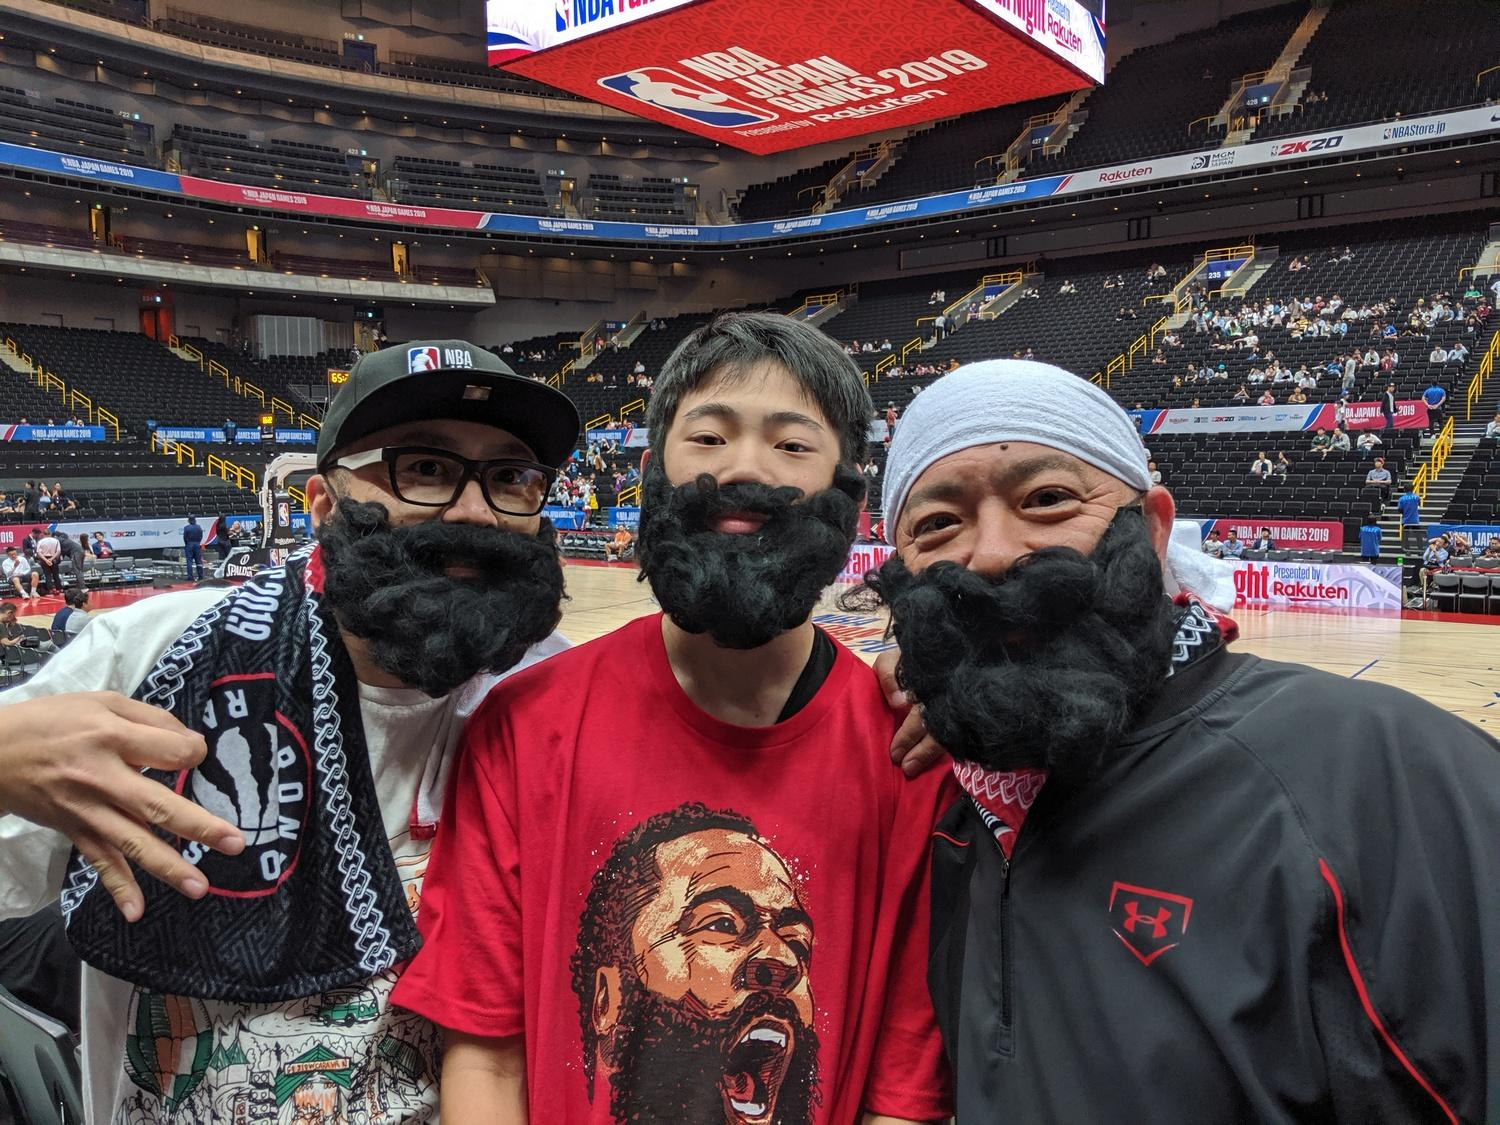 As part of the NBA Japan Games, fans from around the country were treated to an extraordinary evening of entertainment in the form of NBA Fan Night.